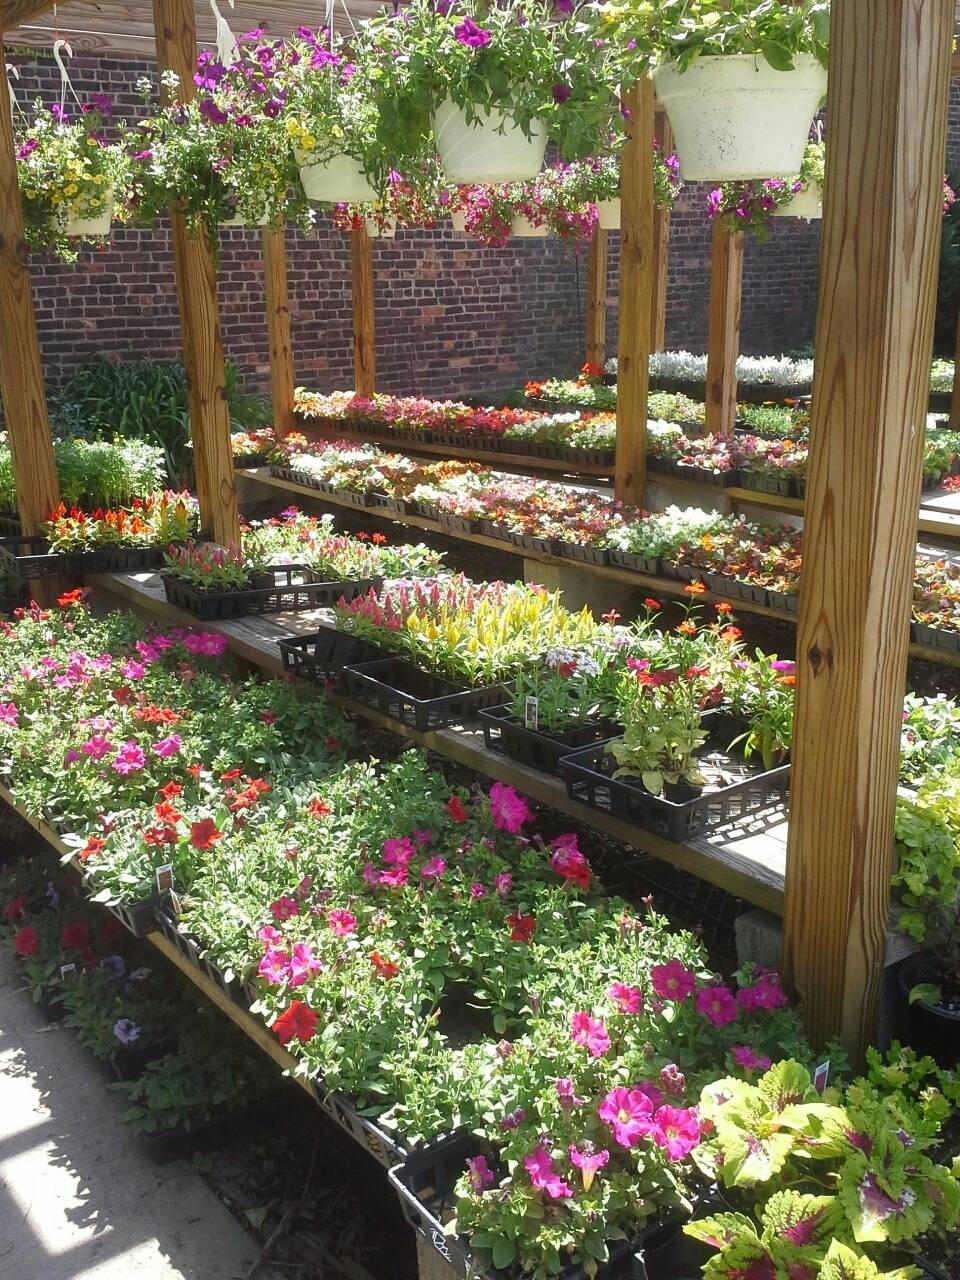 Things To Do in Brooklyn, garden stores in brooklyn